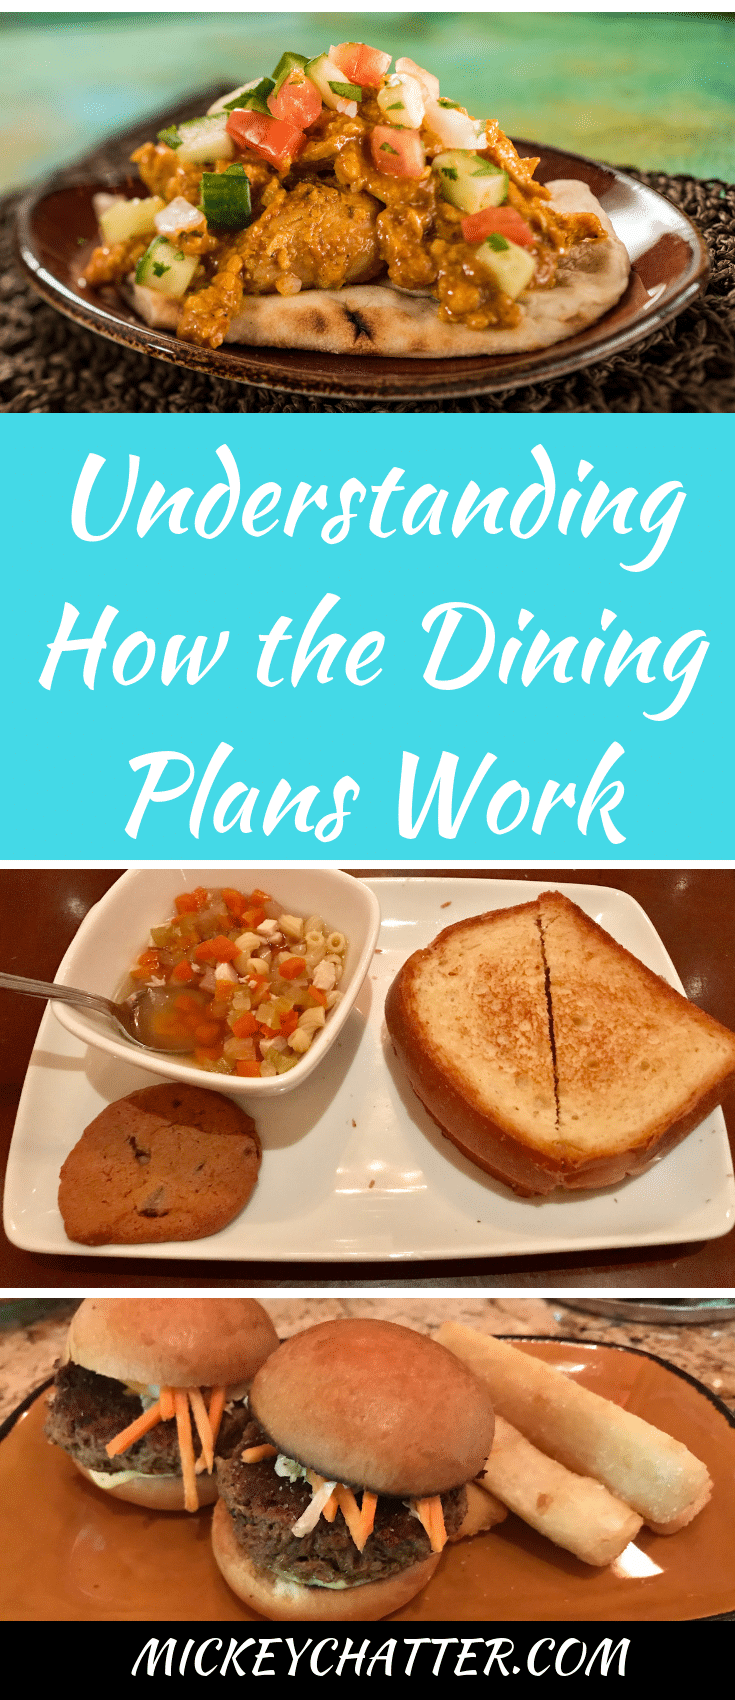 Understanding the Disney World dining plans and how they work. How to know which one is right for you! #disneyworld #disneydining #disneydiningplans #disneyfood #disneyvacation #disneytrip #disneyplanning